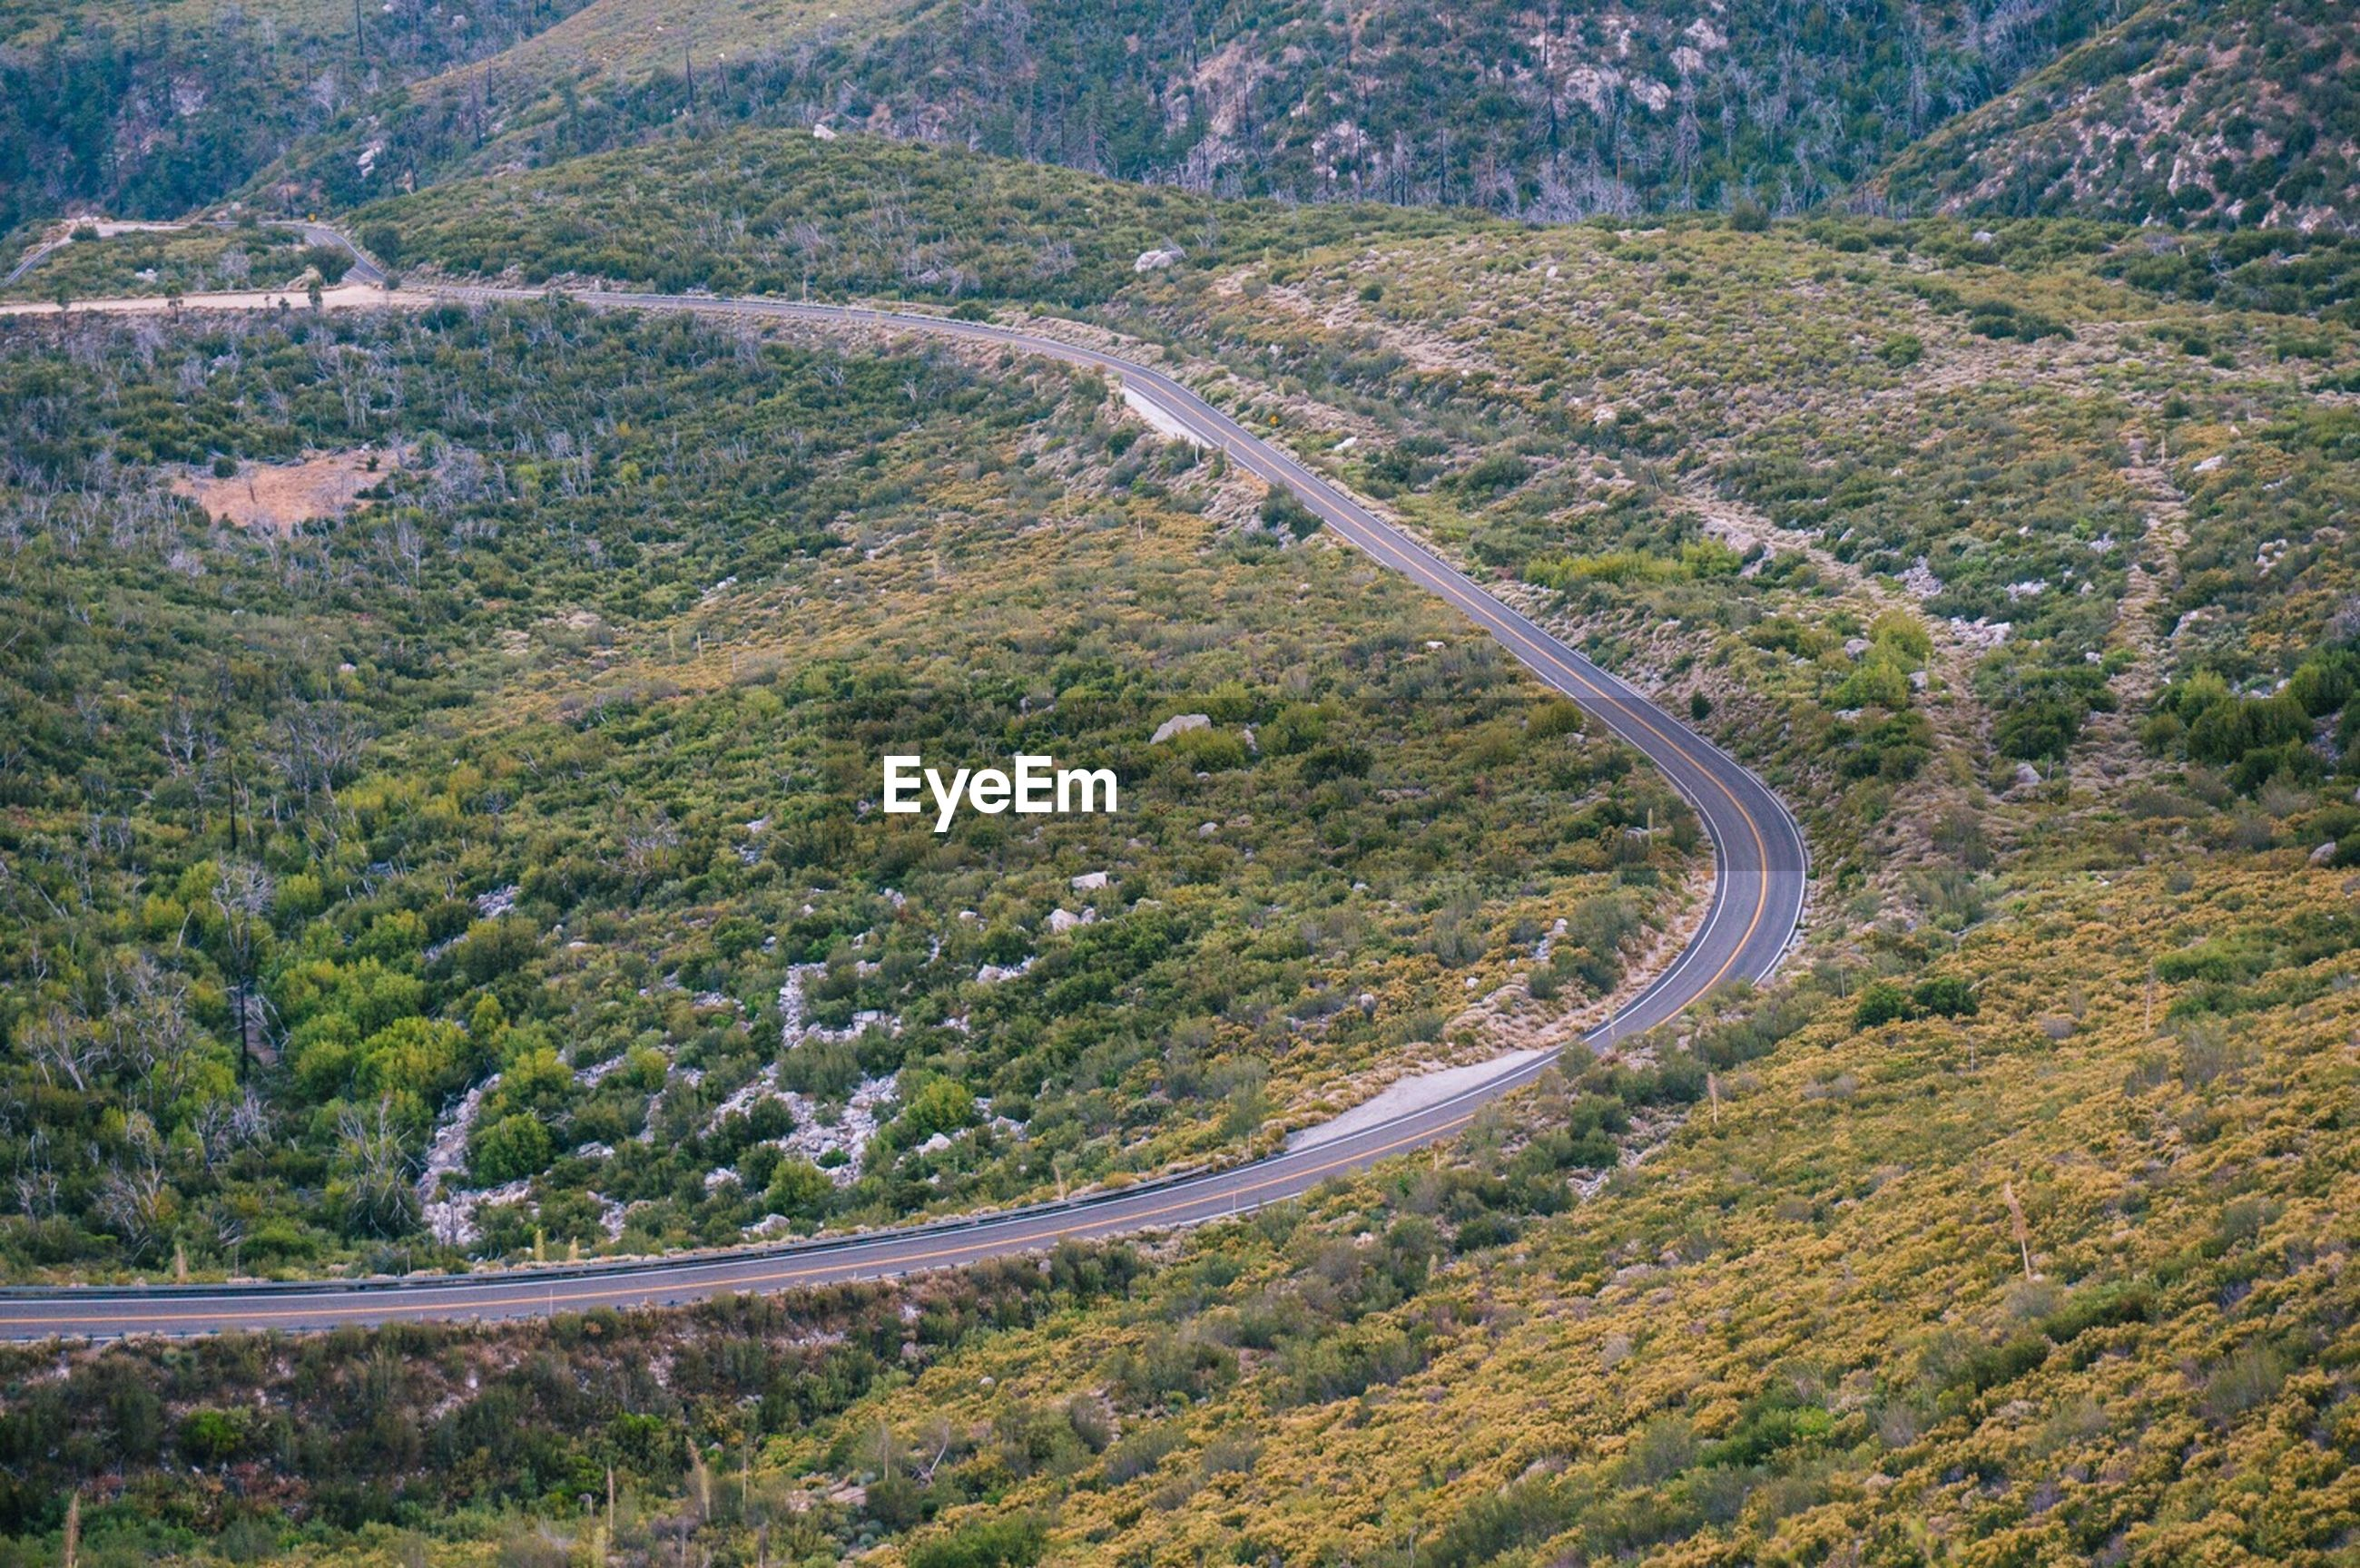 HIGH ANGLE VIEW OF ROAD PASSING THROUGH LANDSCAPE